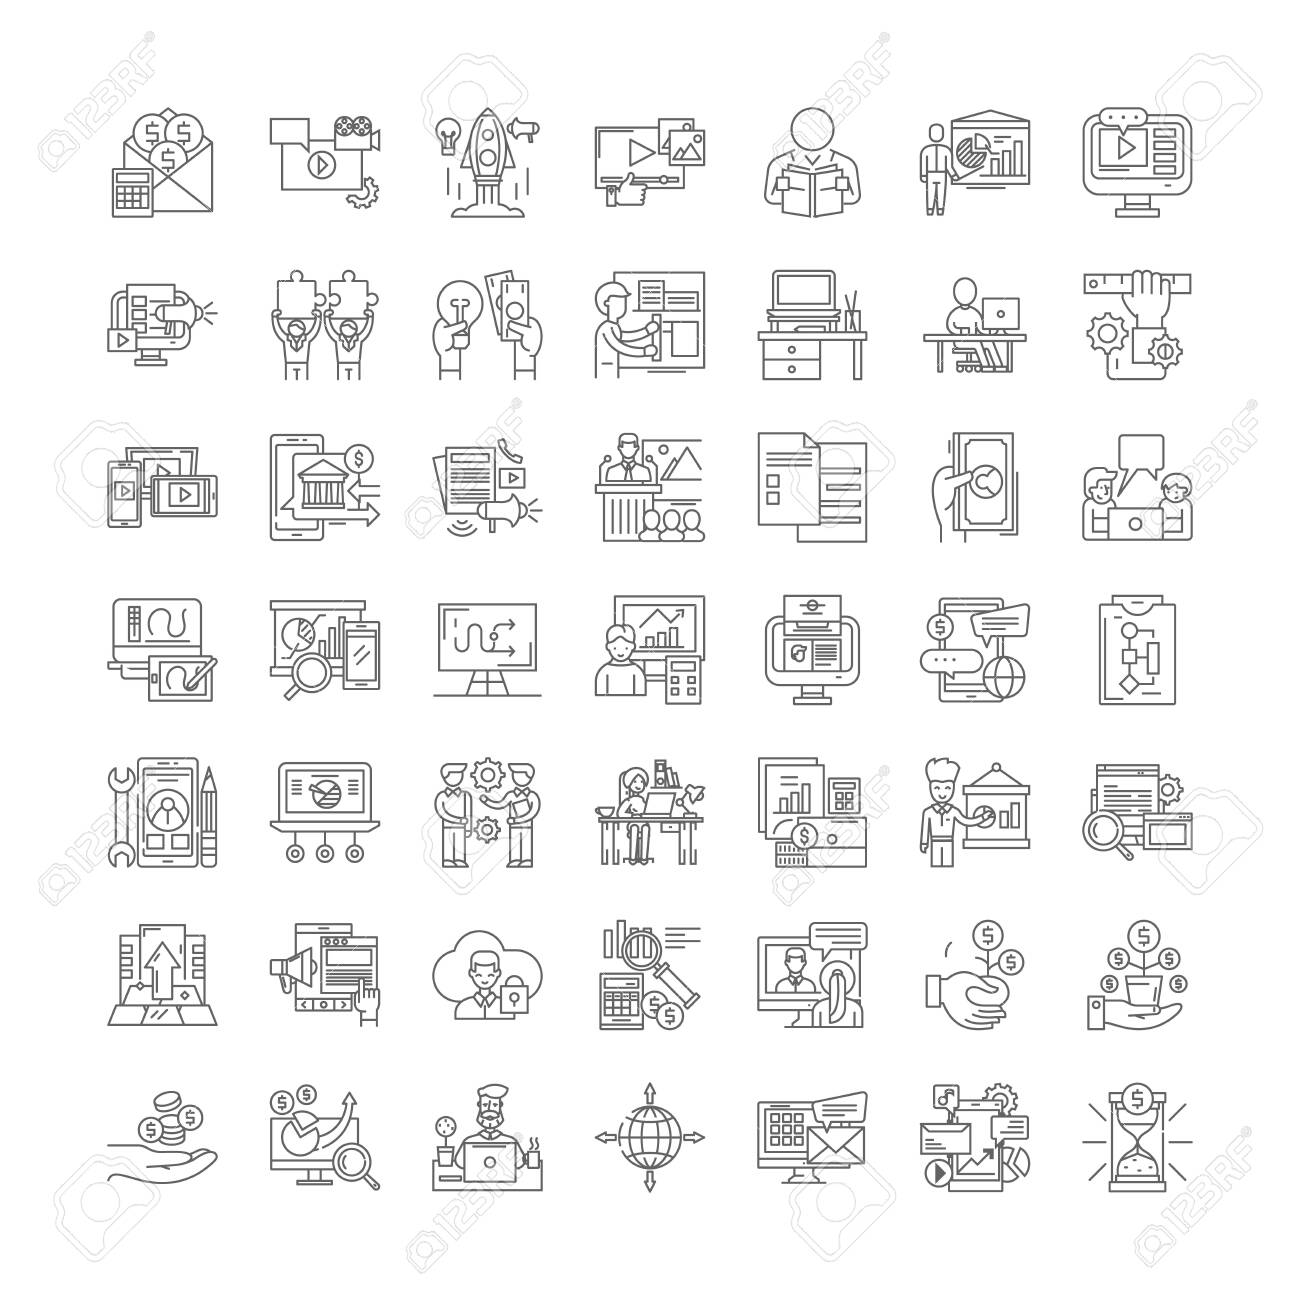 Learning business line icons, signs, symbols vector, linear illustration set - 134821004